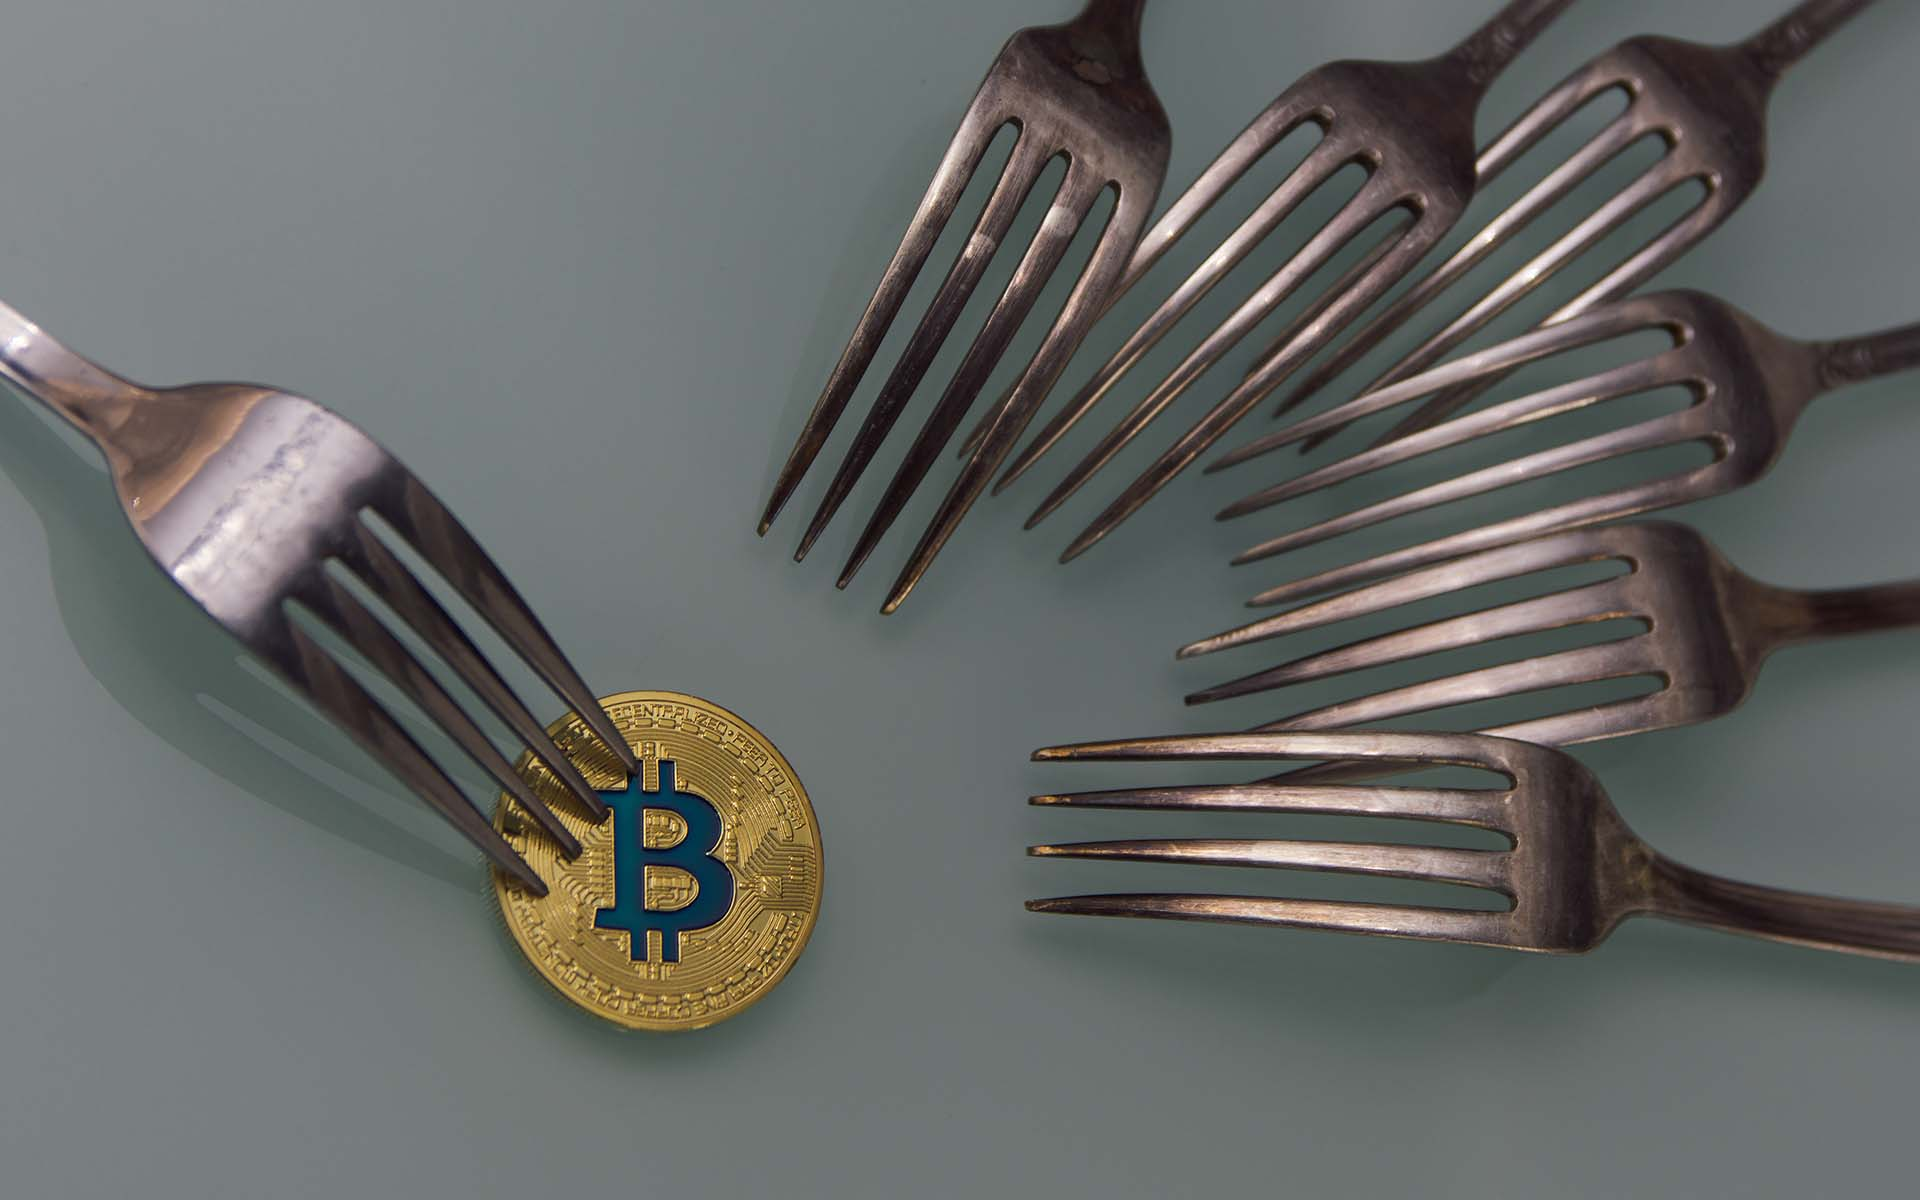 ss bitcoin forks